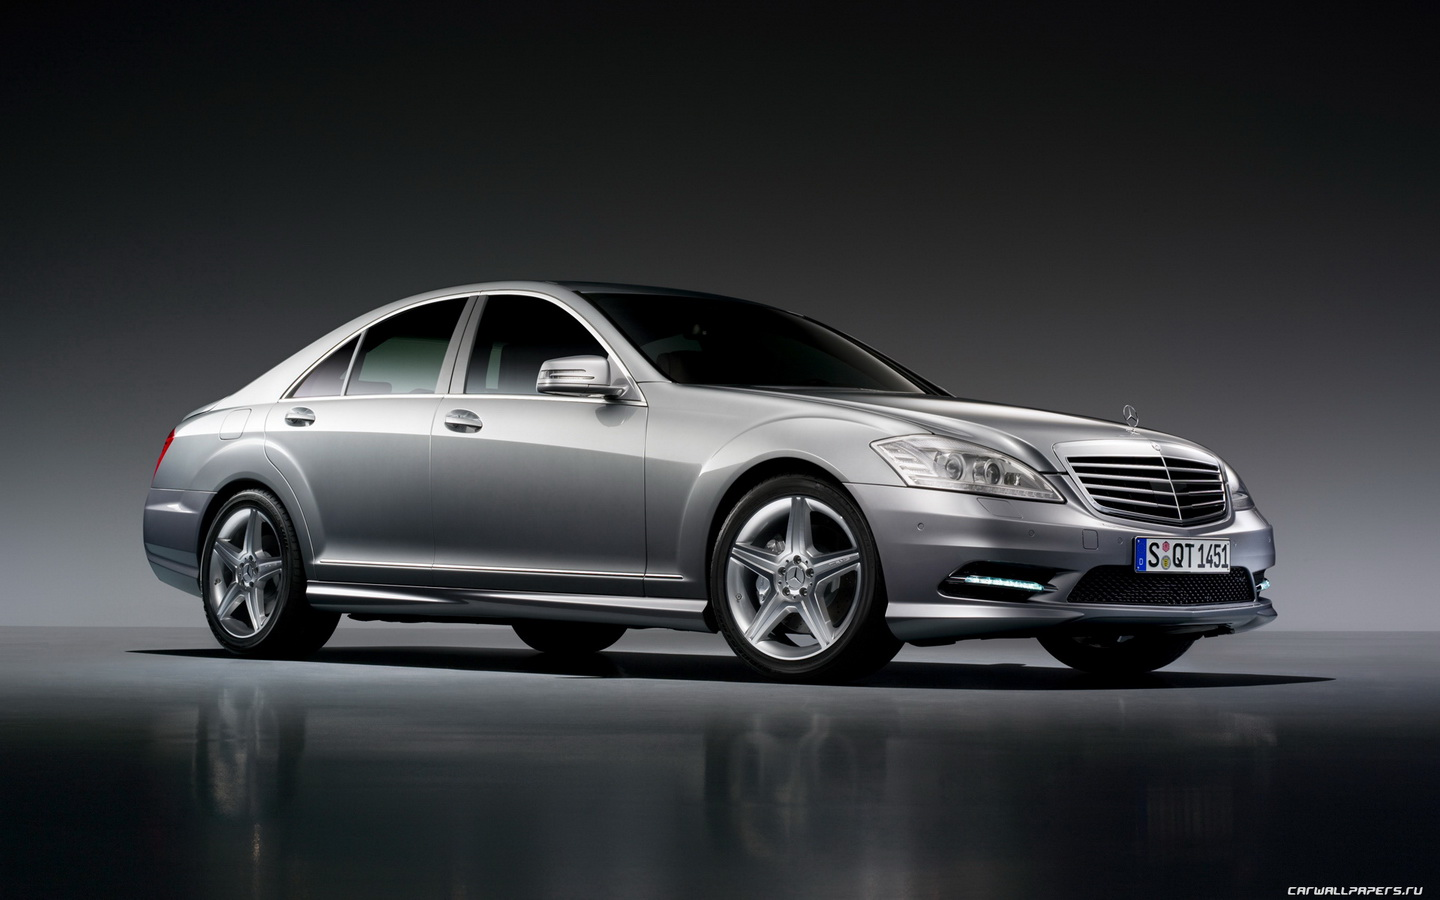 2017 Mercedes Benz S Class AMG Sports Package photo - 1